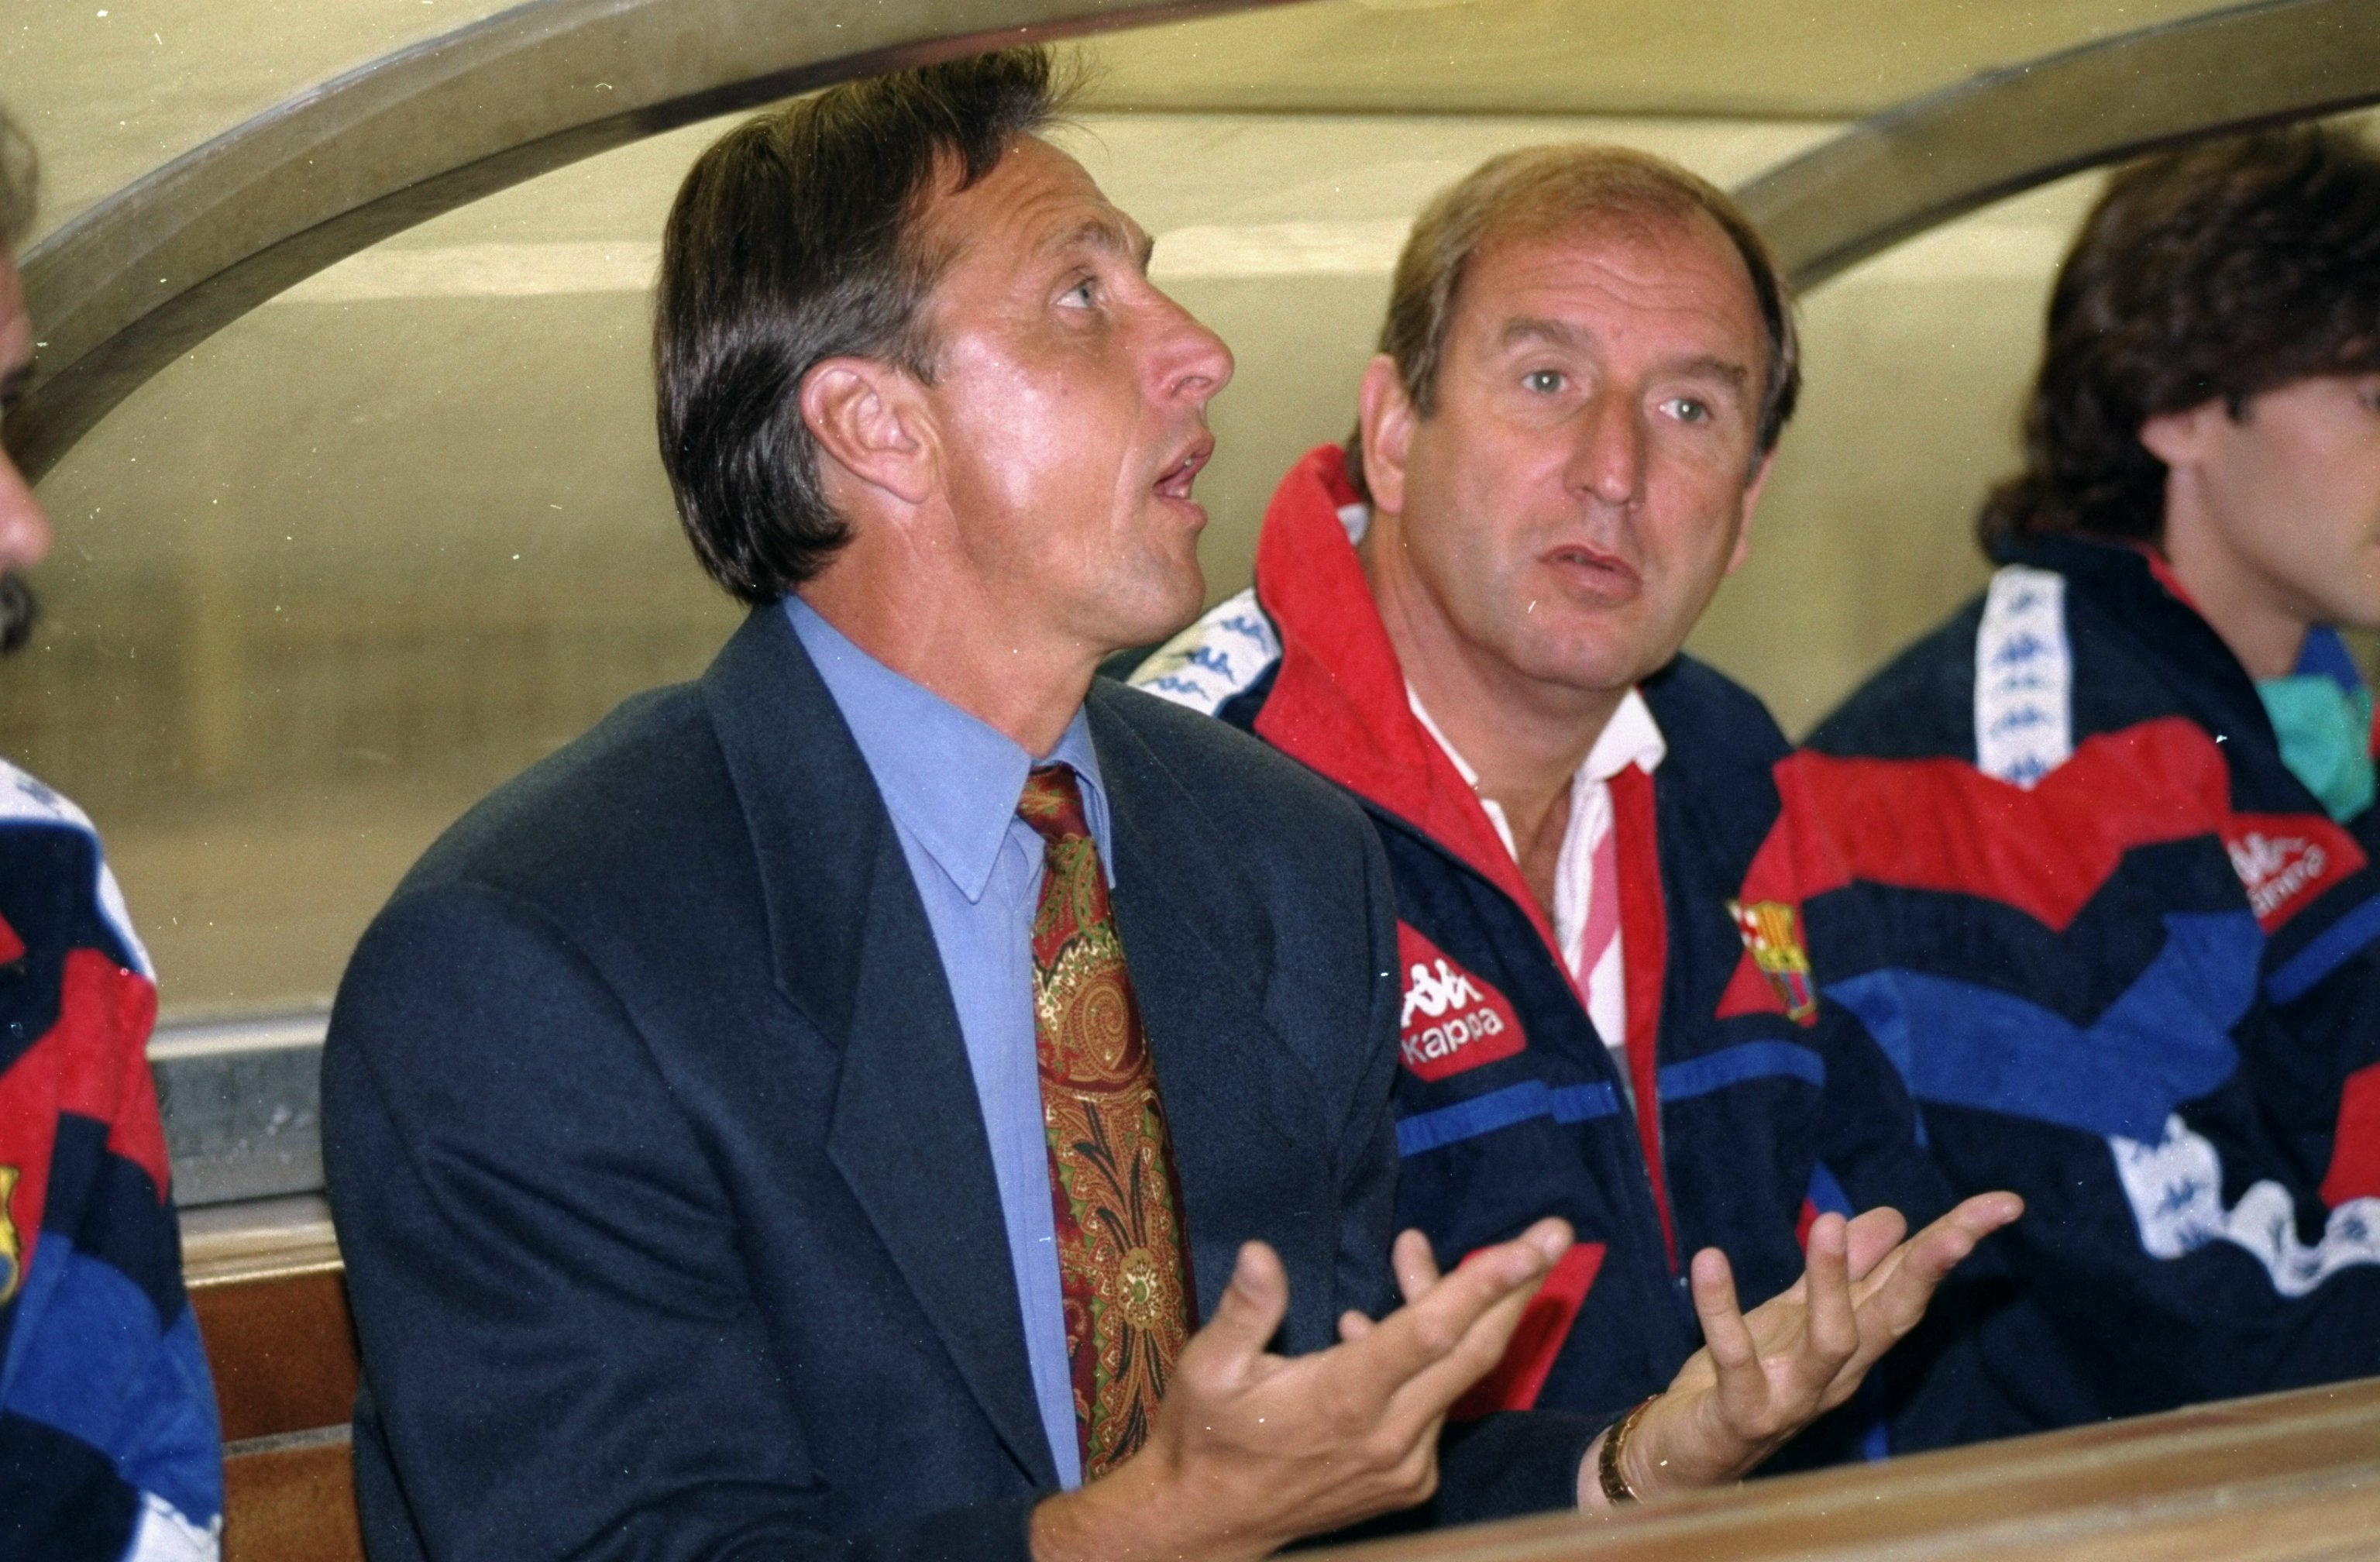 1996: Portrait of Barcelona Manager Johan Cruyff in the dug out during a match. Mandatory Credit: Clive Brunskill/Allsport